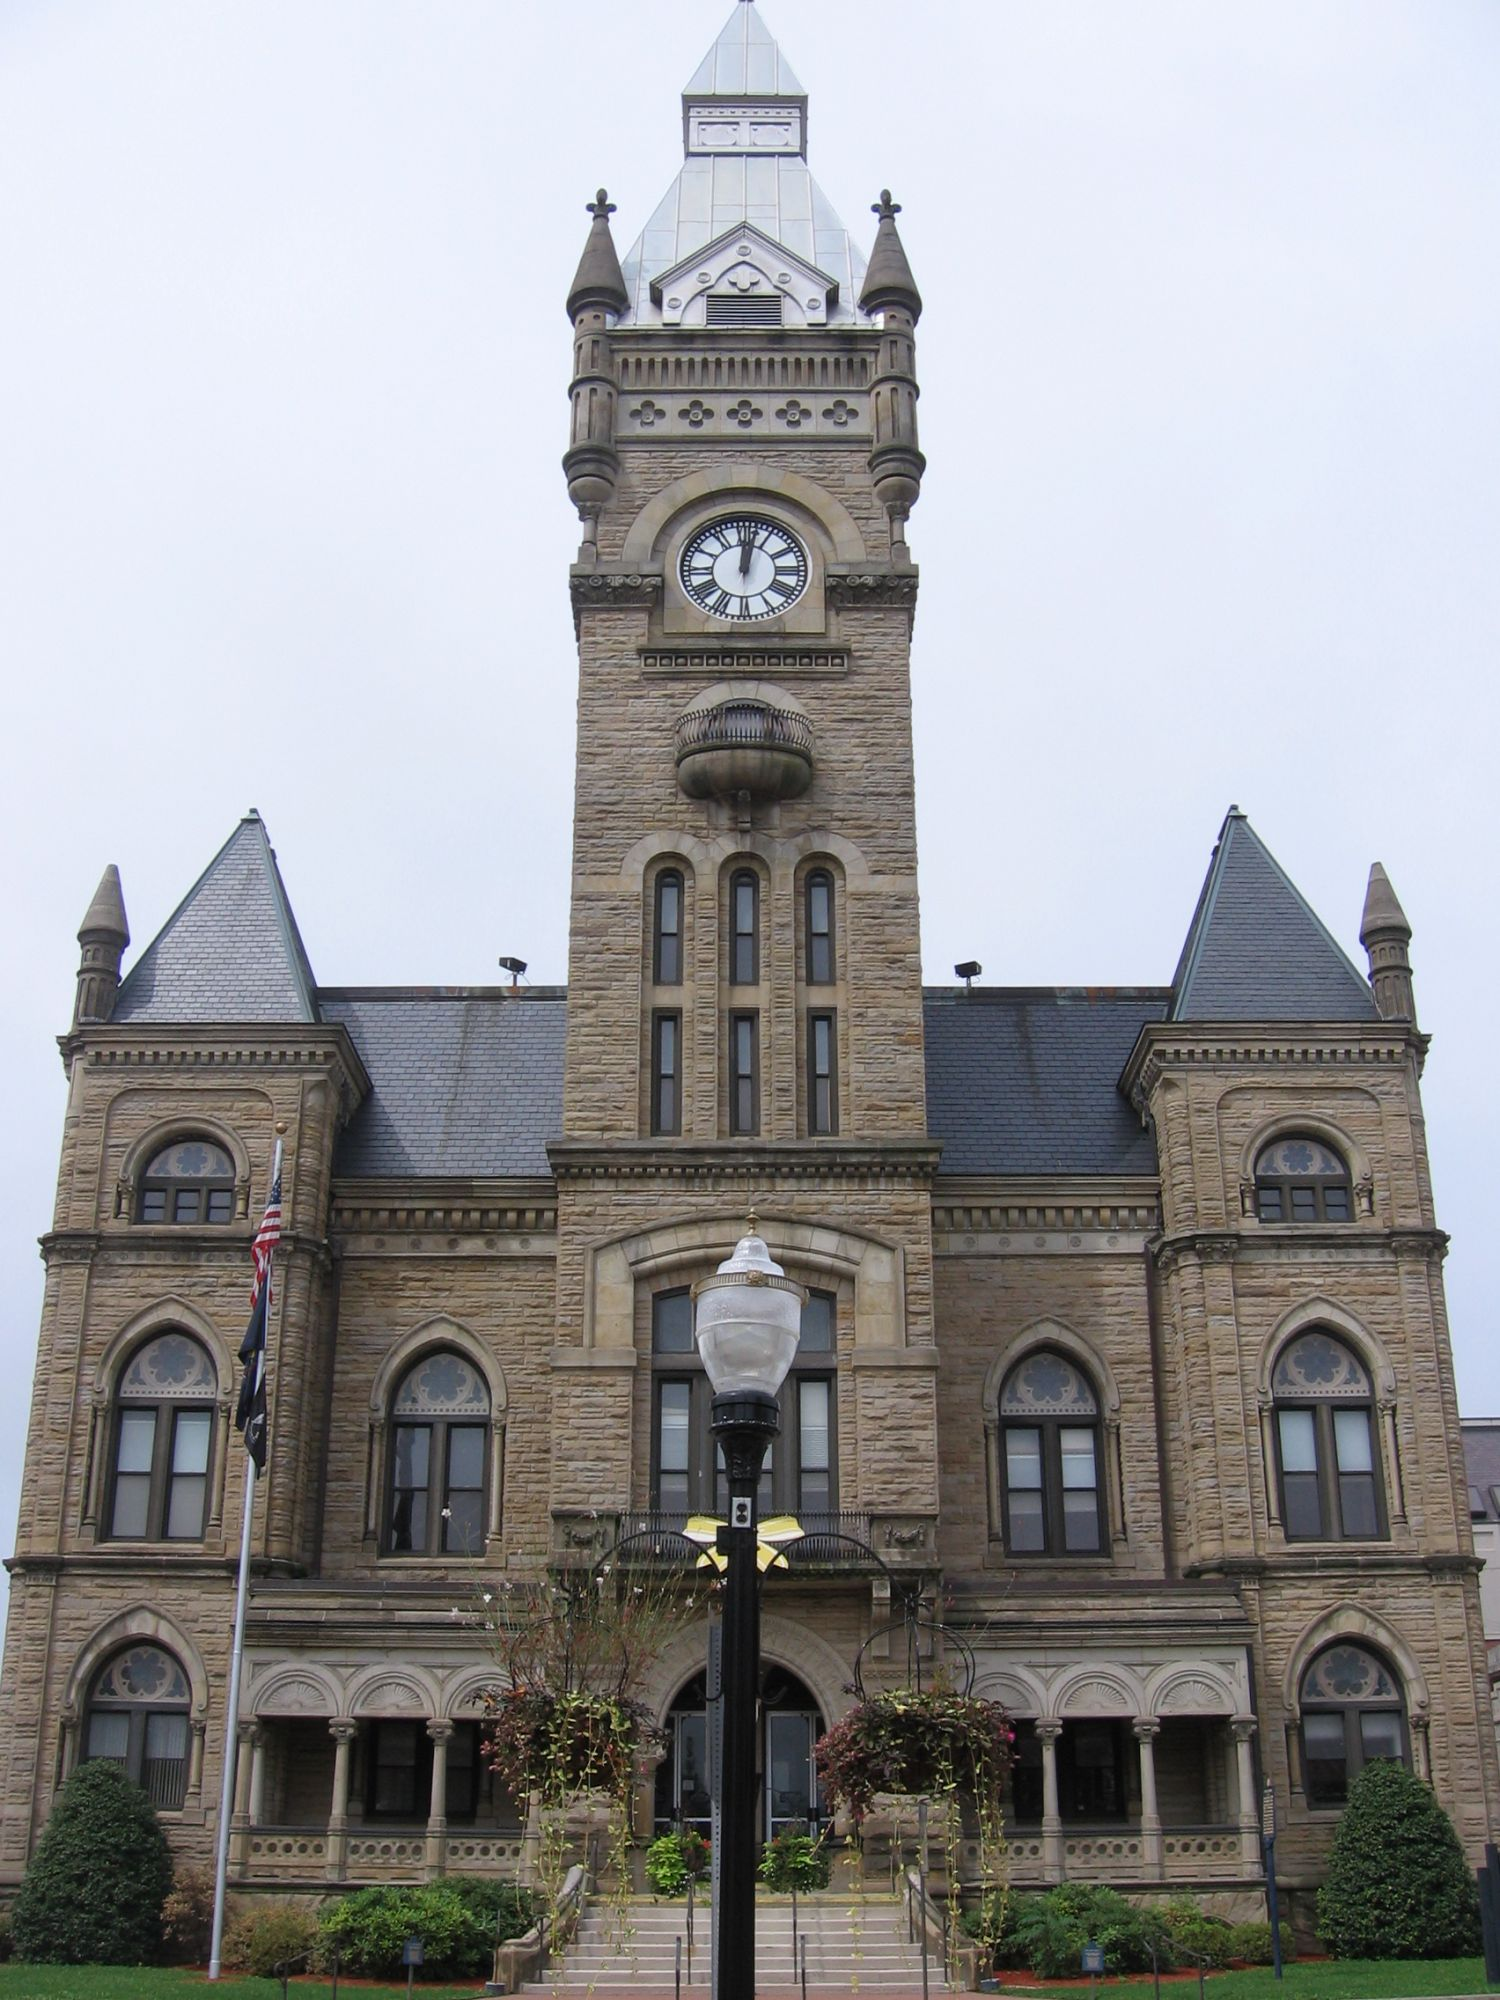 Butler County Courthouse - Photo Credit: Mvincec [Public domain], via Wikimedia Commons